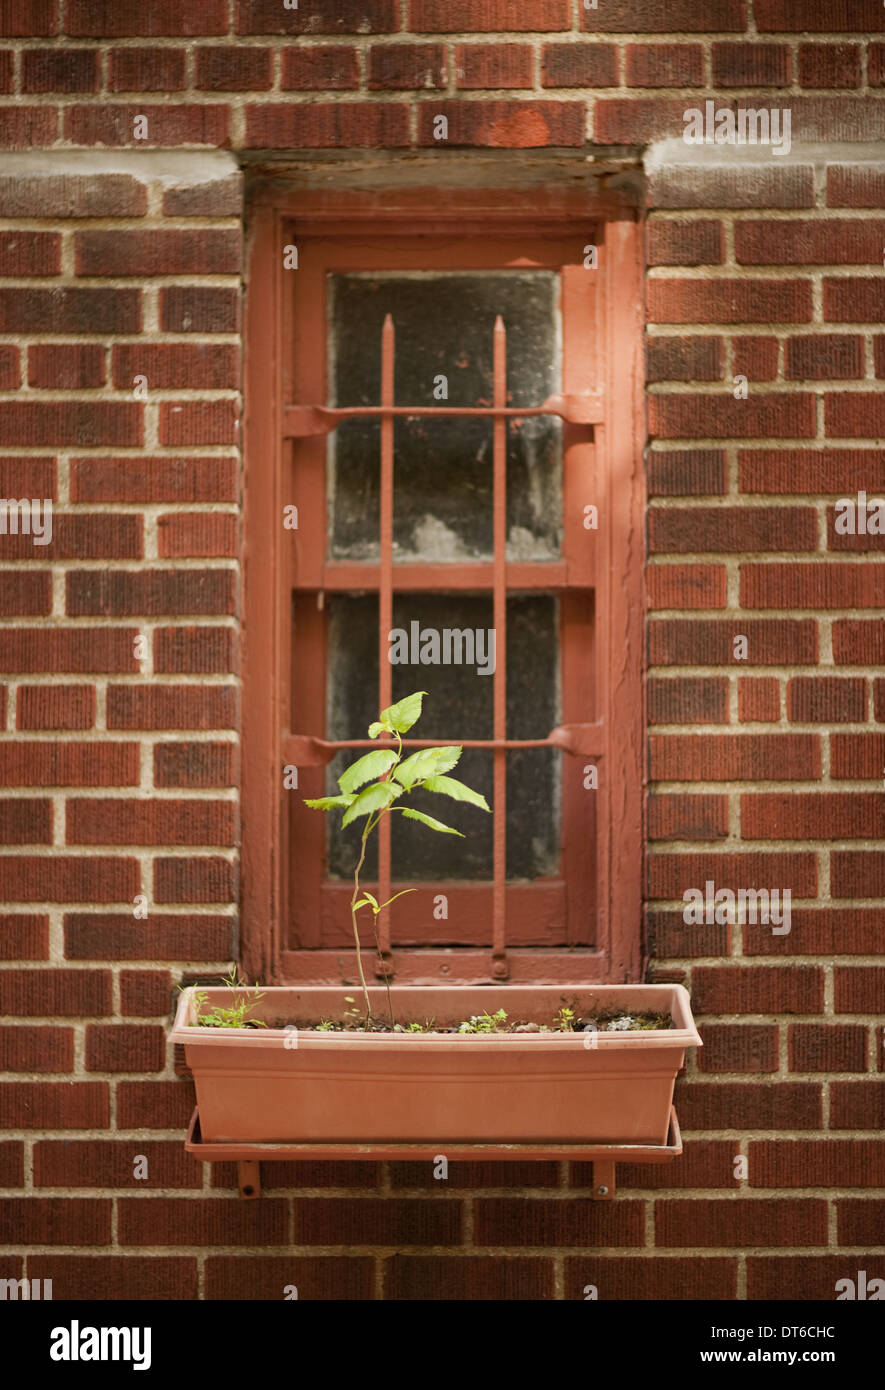 The exterior wall of a city apartment building in New York, a narrow window with a single plant in a windowbox. - Stock Image